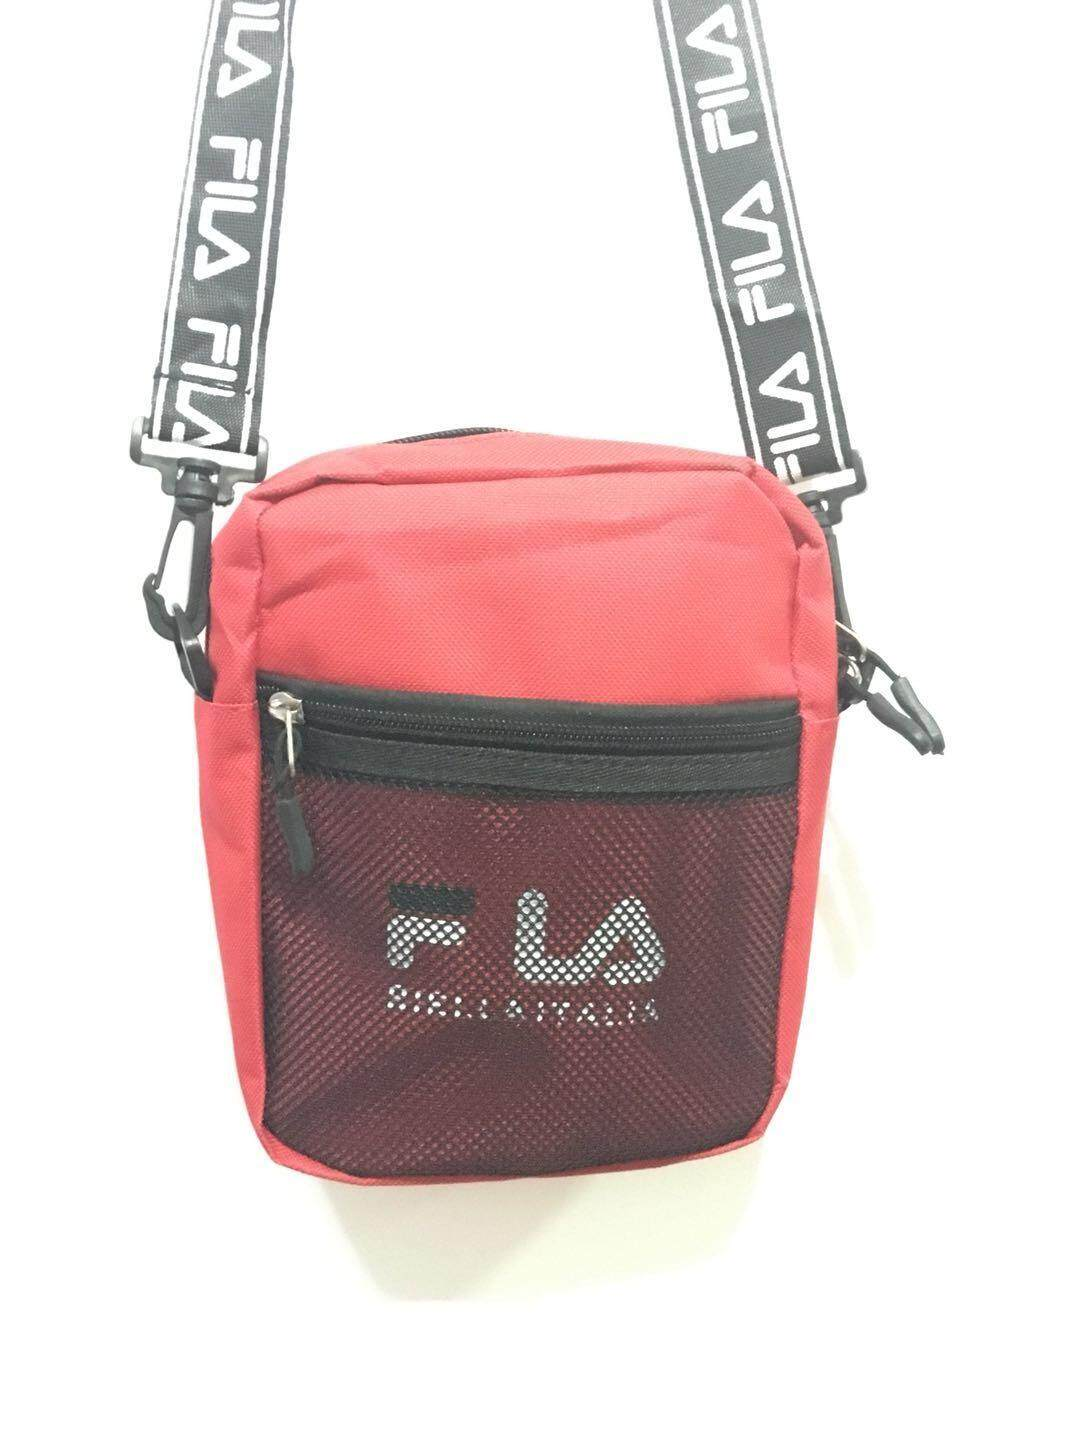 FLA กระเป๋า Mini Shoulder Heritage Bag